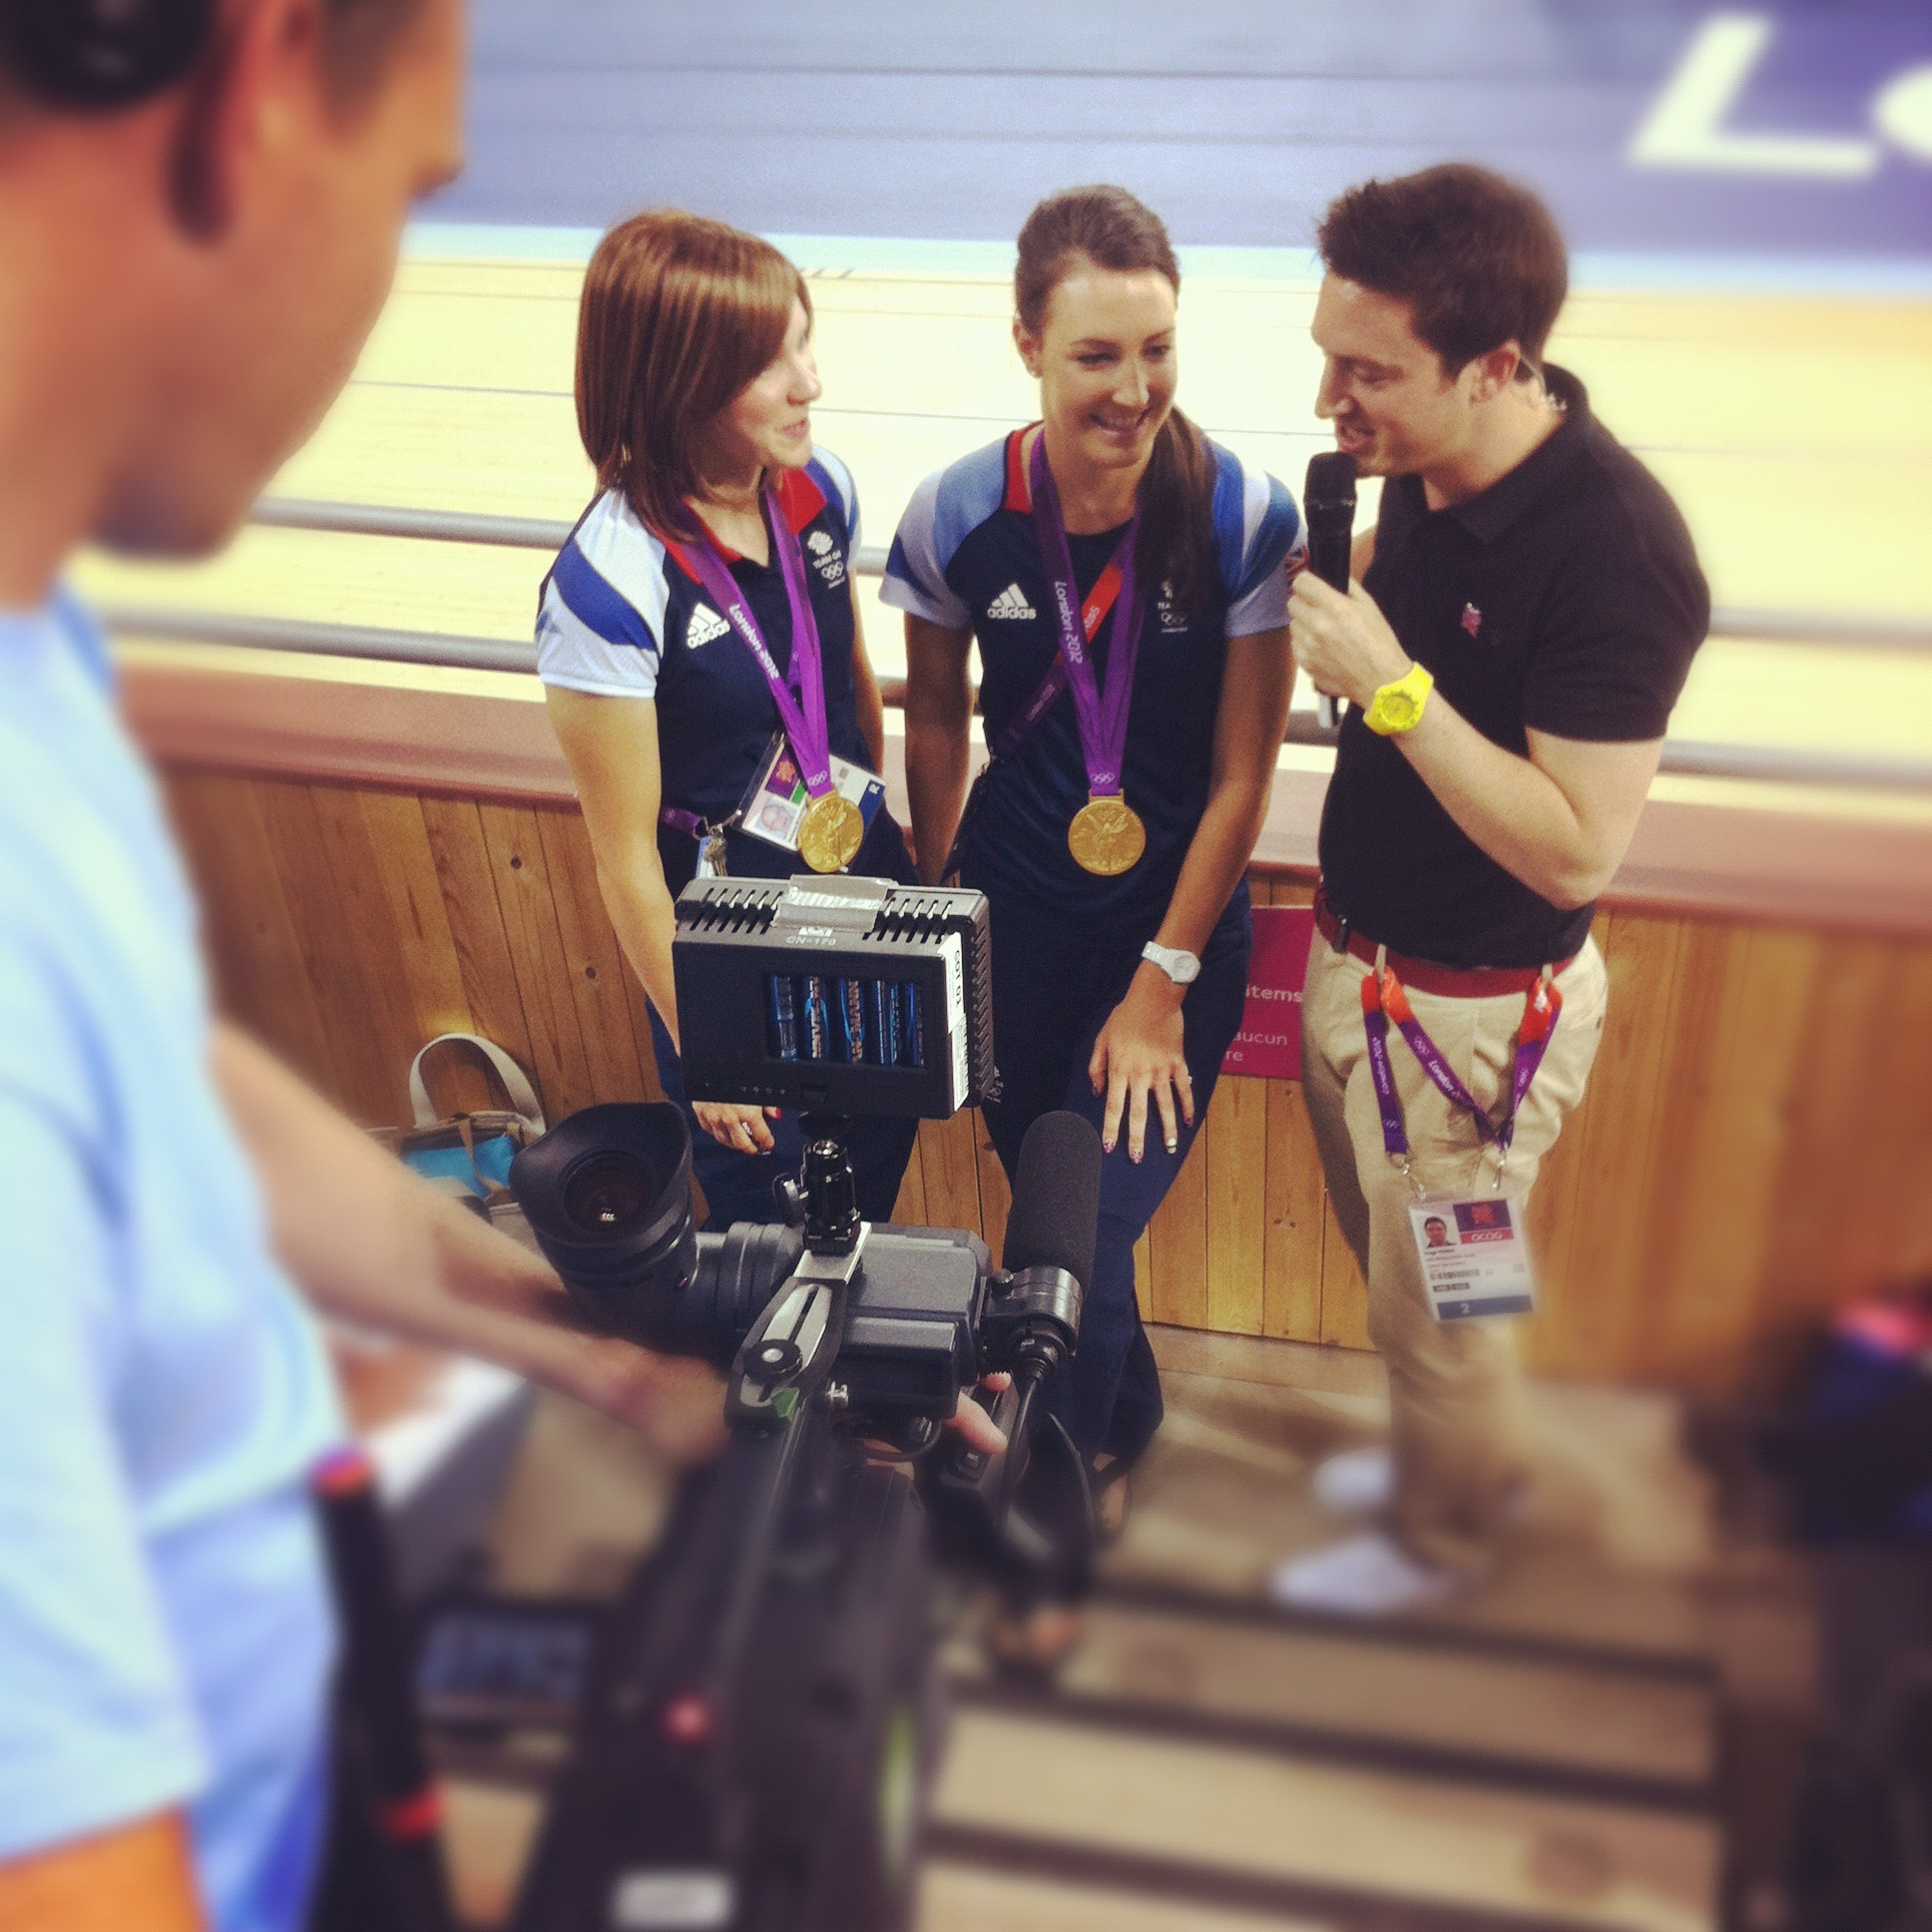 Post-race interview at London 2012